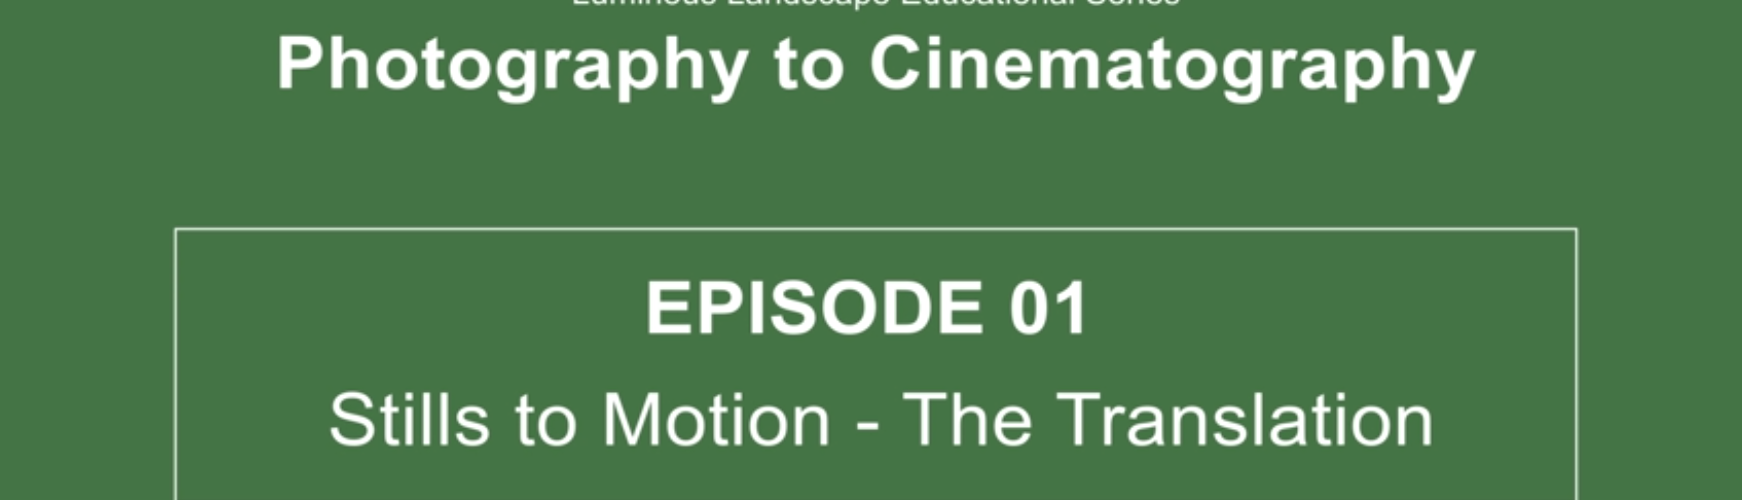 EVOLVING YOUR PHOTOGRAPHY INTO CINEMATOGRAPHY. Episode 01 – Stills to Motion – The Translation